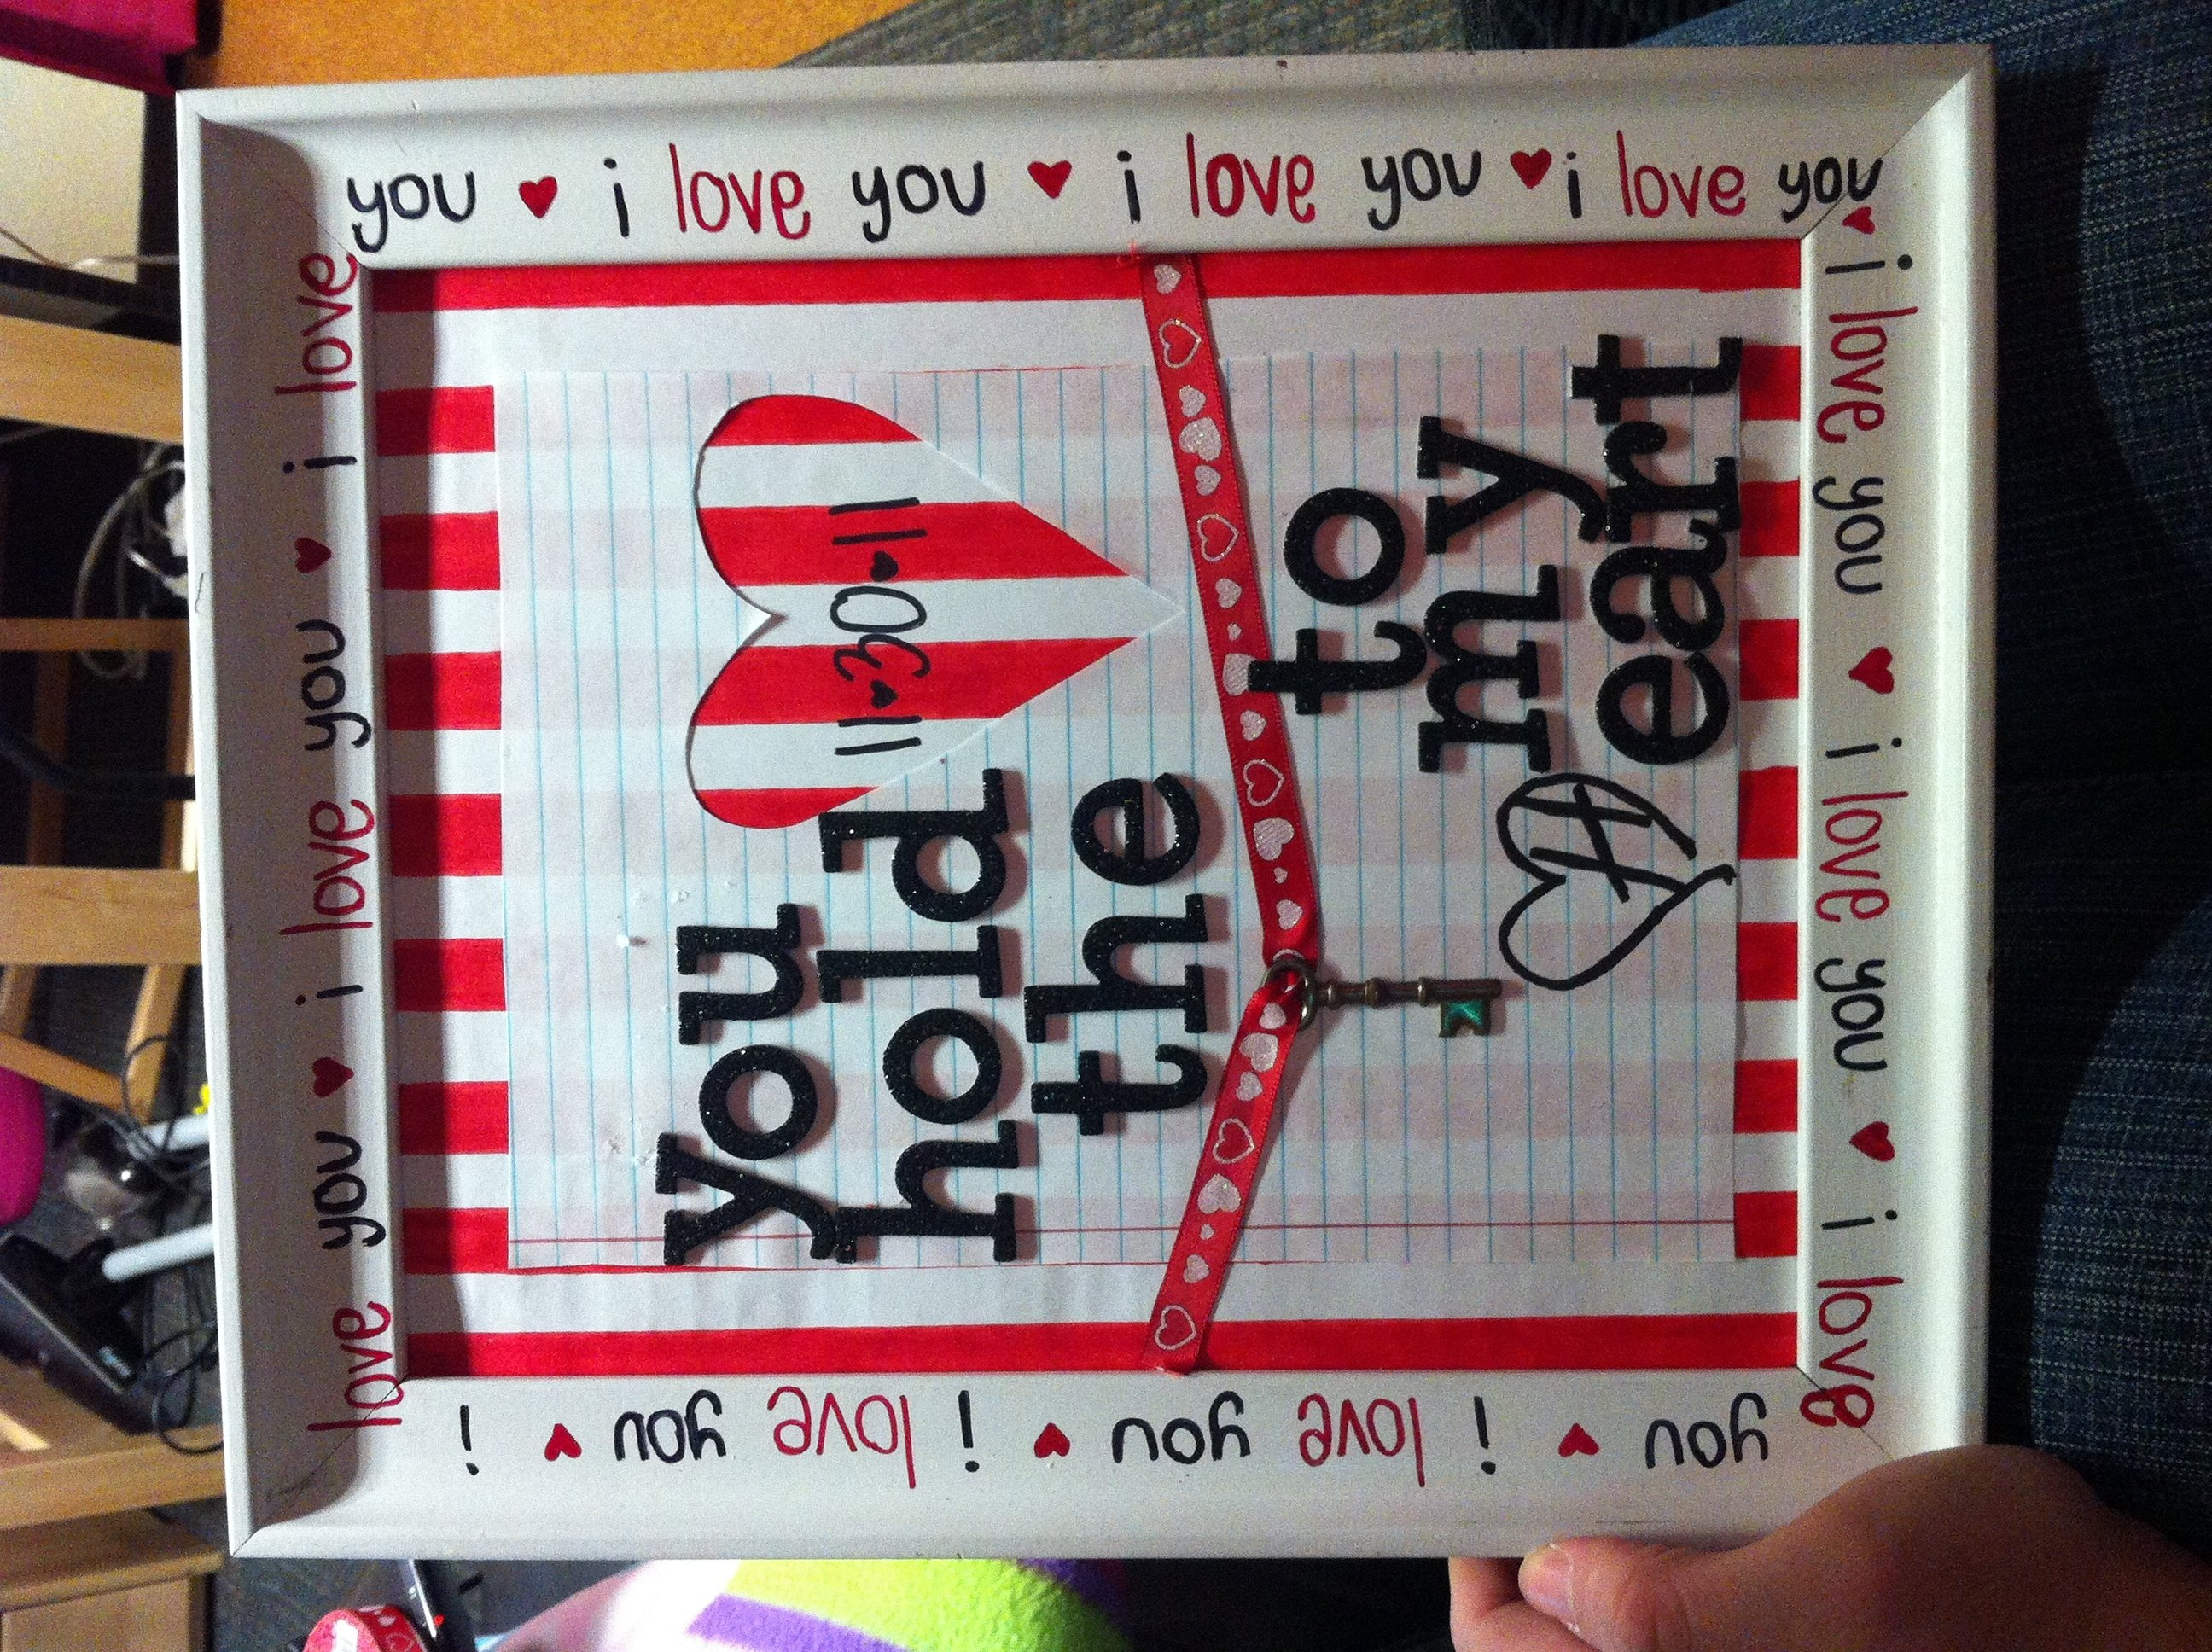 10 Fashionable Cute Ideas For Boyfriend On Valentines Day diy valentines day gift to bf me just me pinterest diy 1 2020